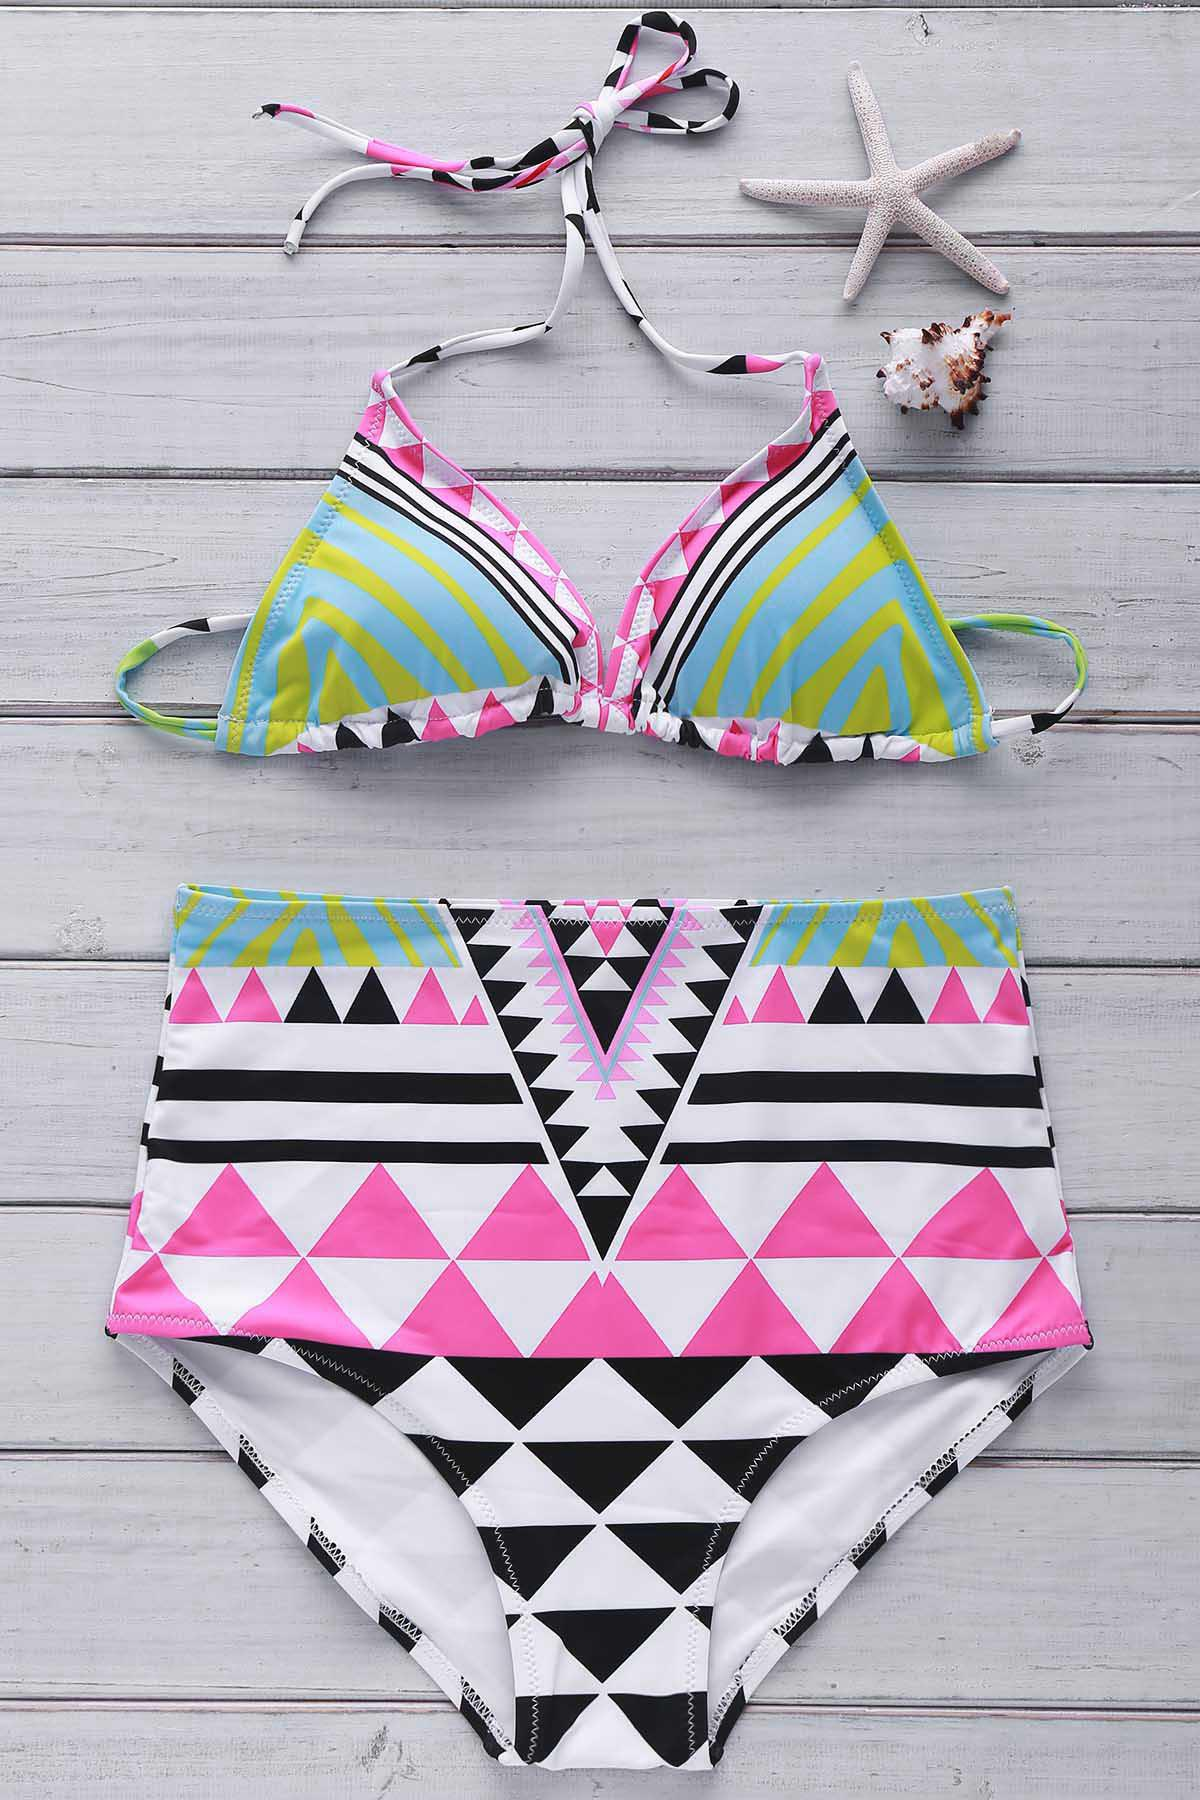 Ethnic Style Halter Argyle Backless High Waist Elastic Women's Bikini Set - COLORMIX M